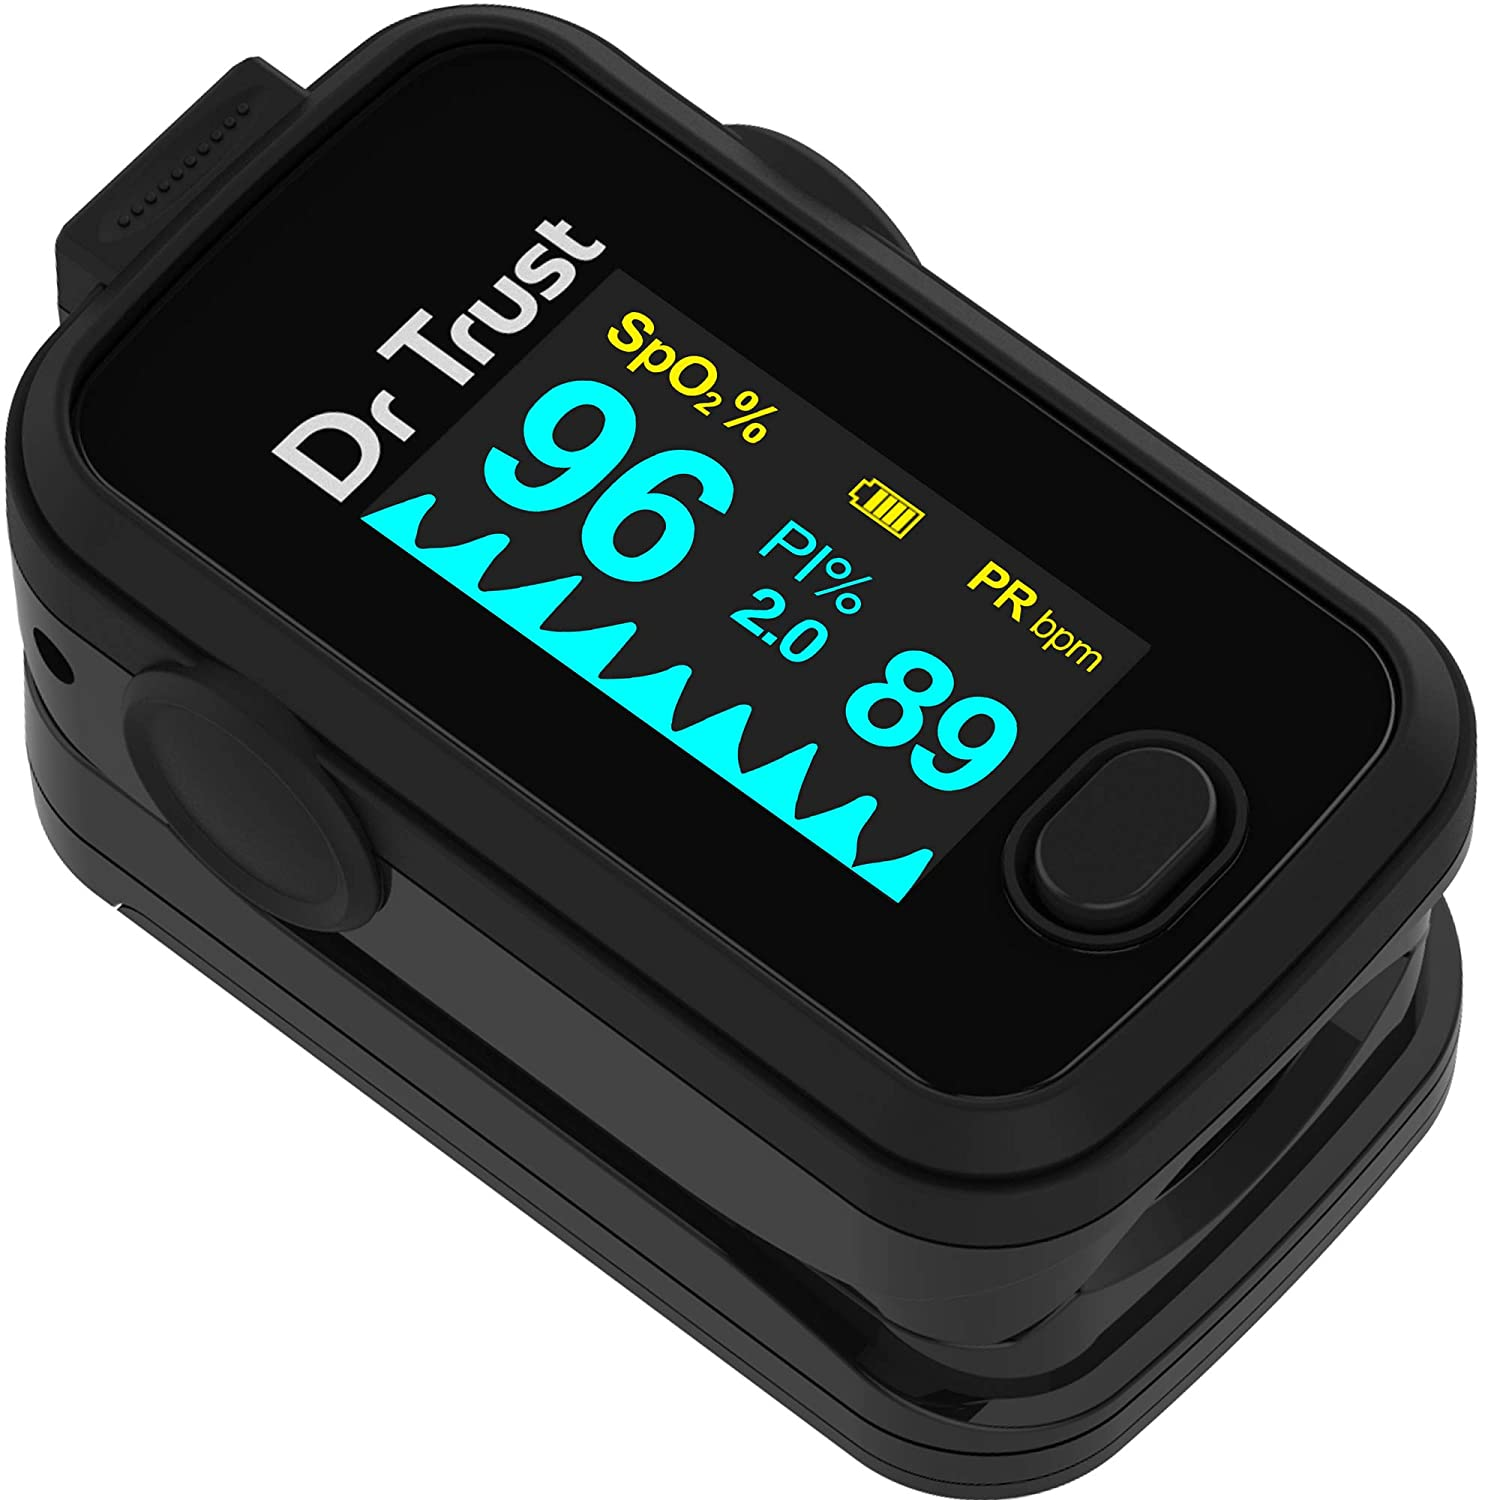 Dr. Trust Signature Series Fingertip Pulse Oximeter With Audio Visual Alarm (Midnight Black)- 201